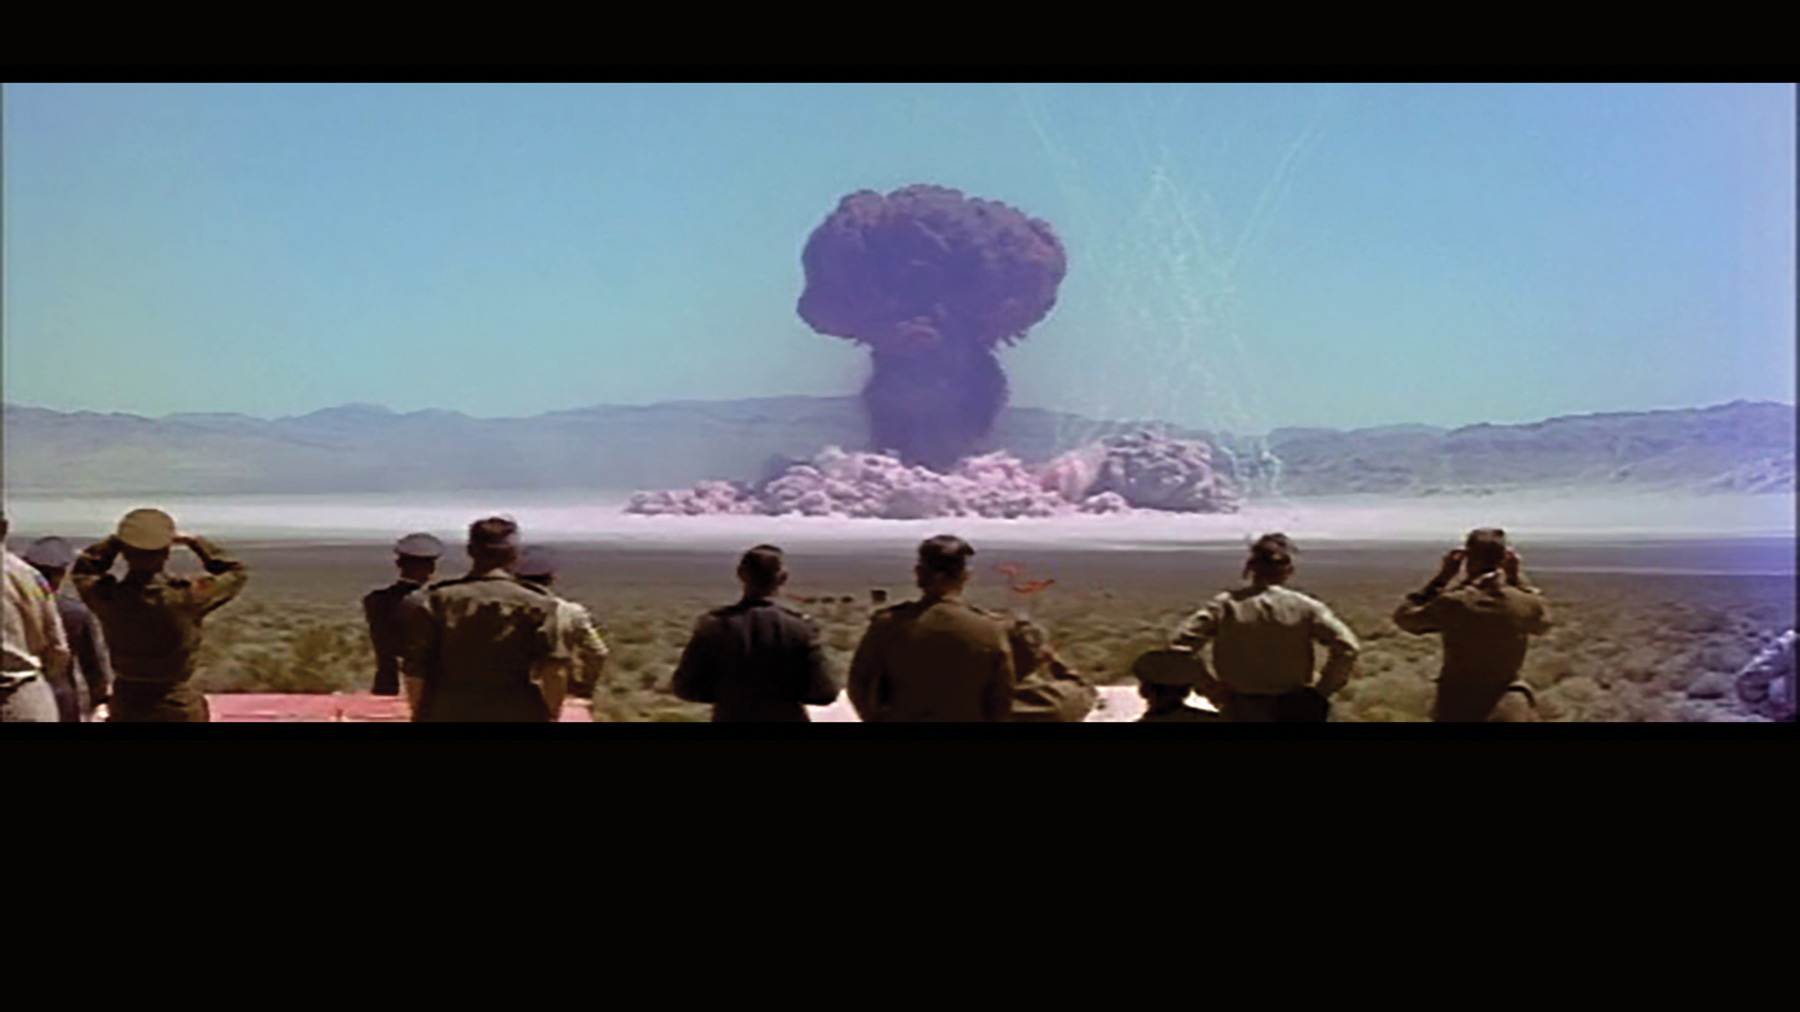 Observers look on during a nuclear test in the Nevada desert in the early 1950s, one of many filmed by a secret Hollywood studio called Lookout Mountain Laboratory. Image from CinemaScope footage from 1955, restored and reconstructed by Peter Kuran. Photo courtesy the Atomic Filmmakers, Santa Clarita, California.